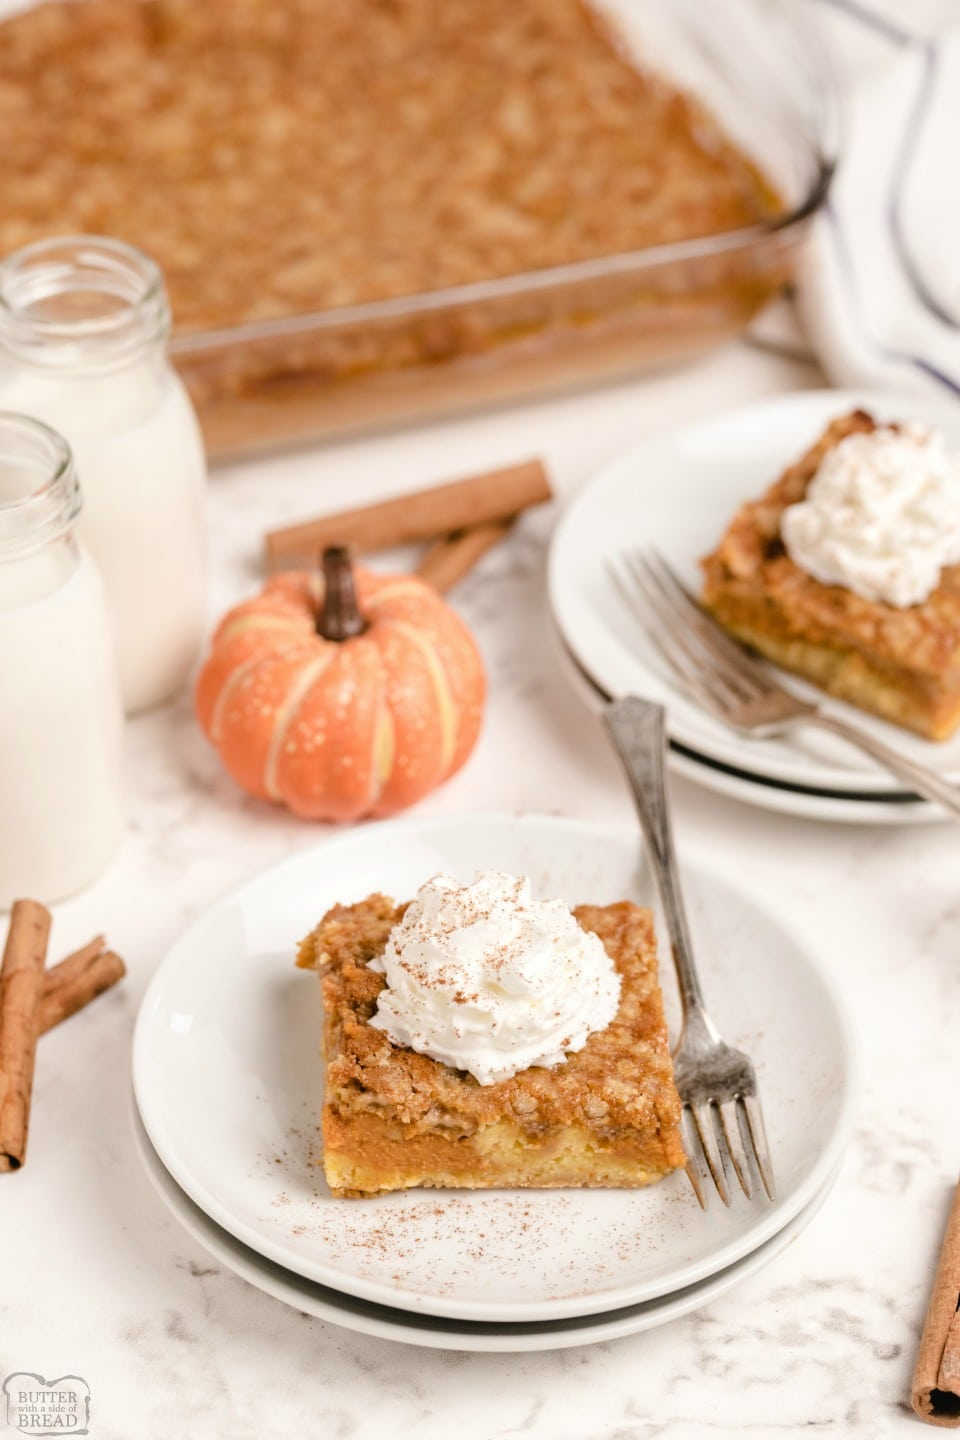 Pumpkin Pie Cake is festive Fall dessert made with a cake mix & pumpkin. Easy layered pumpkin cake that comes together fast and is a family favorite!